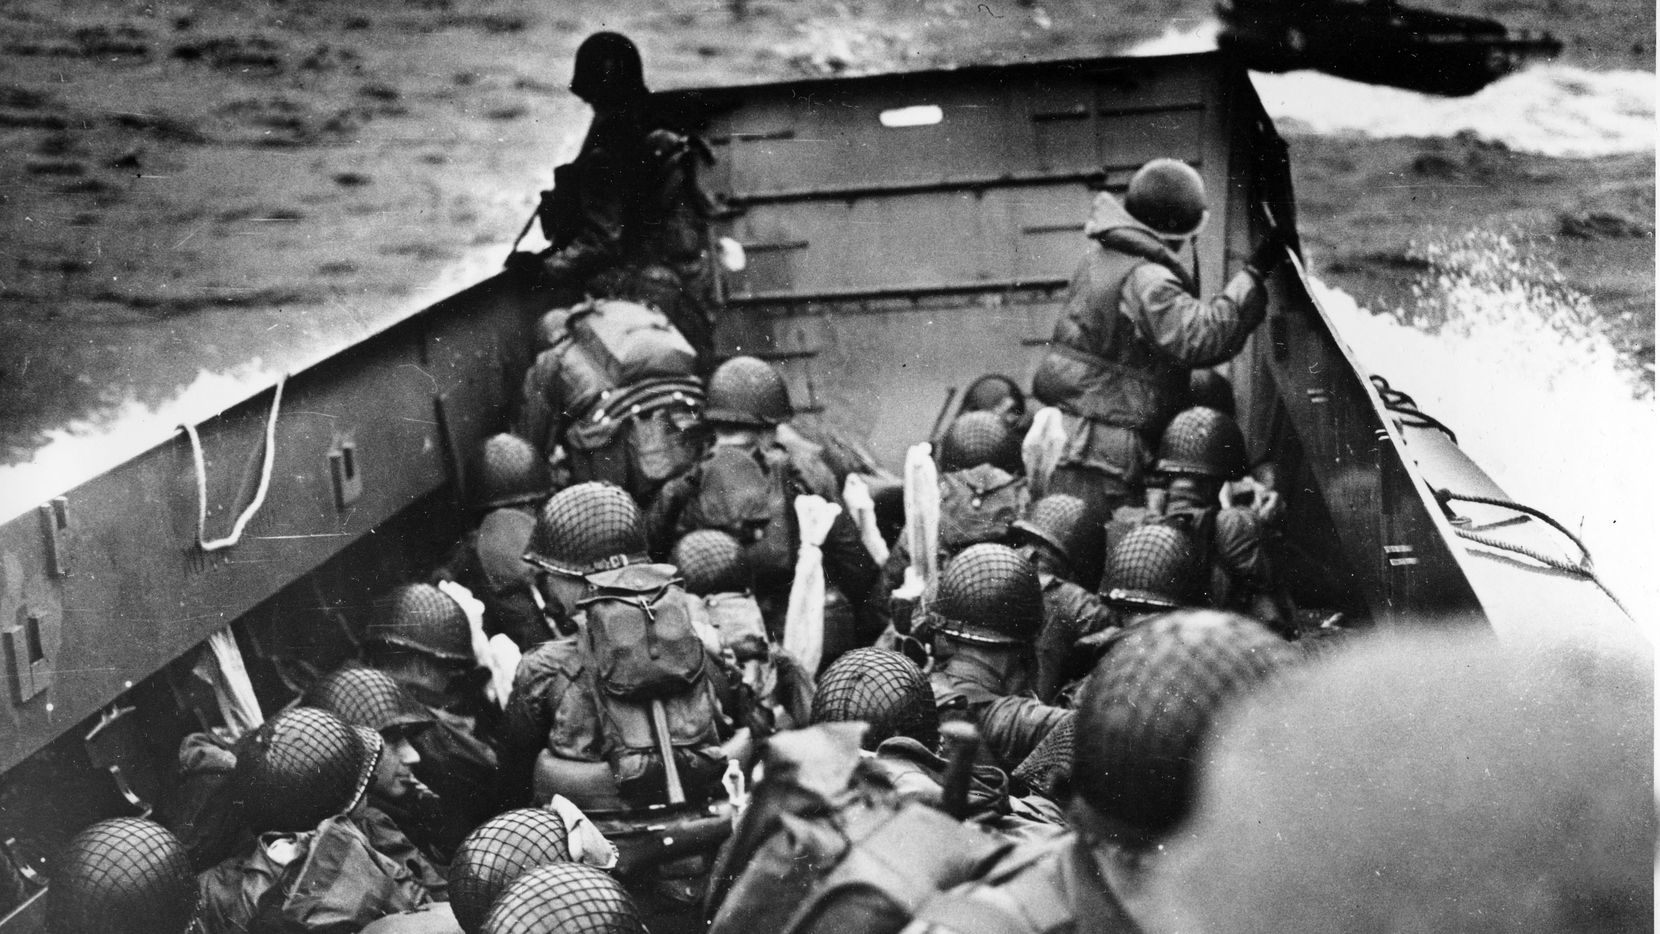 In this June 6, 2014, file photo, allied troops crouch behind the bulwarks of a landing craft as it nears Omaha Beach during a landing in Normandy, France.  The D-Day invasion  broke through Adolf Hitler's western defenses and led to the liberation of France from Nazi occupation just as the Soviet Army was making advances in the east, turning the tide of the war in the Allies' favor. First responders will get to see a film about it for free on Friday.""